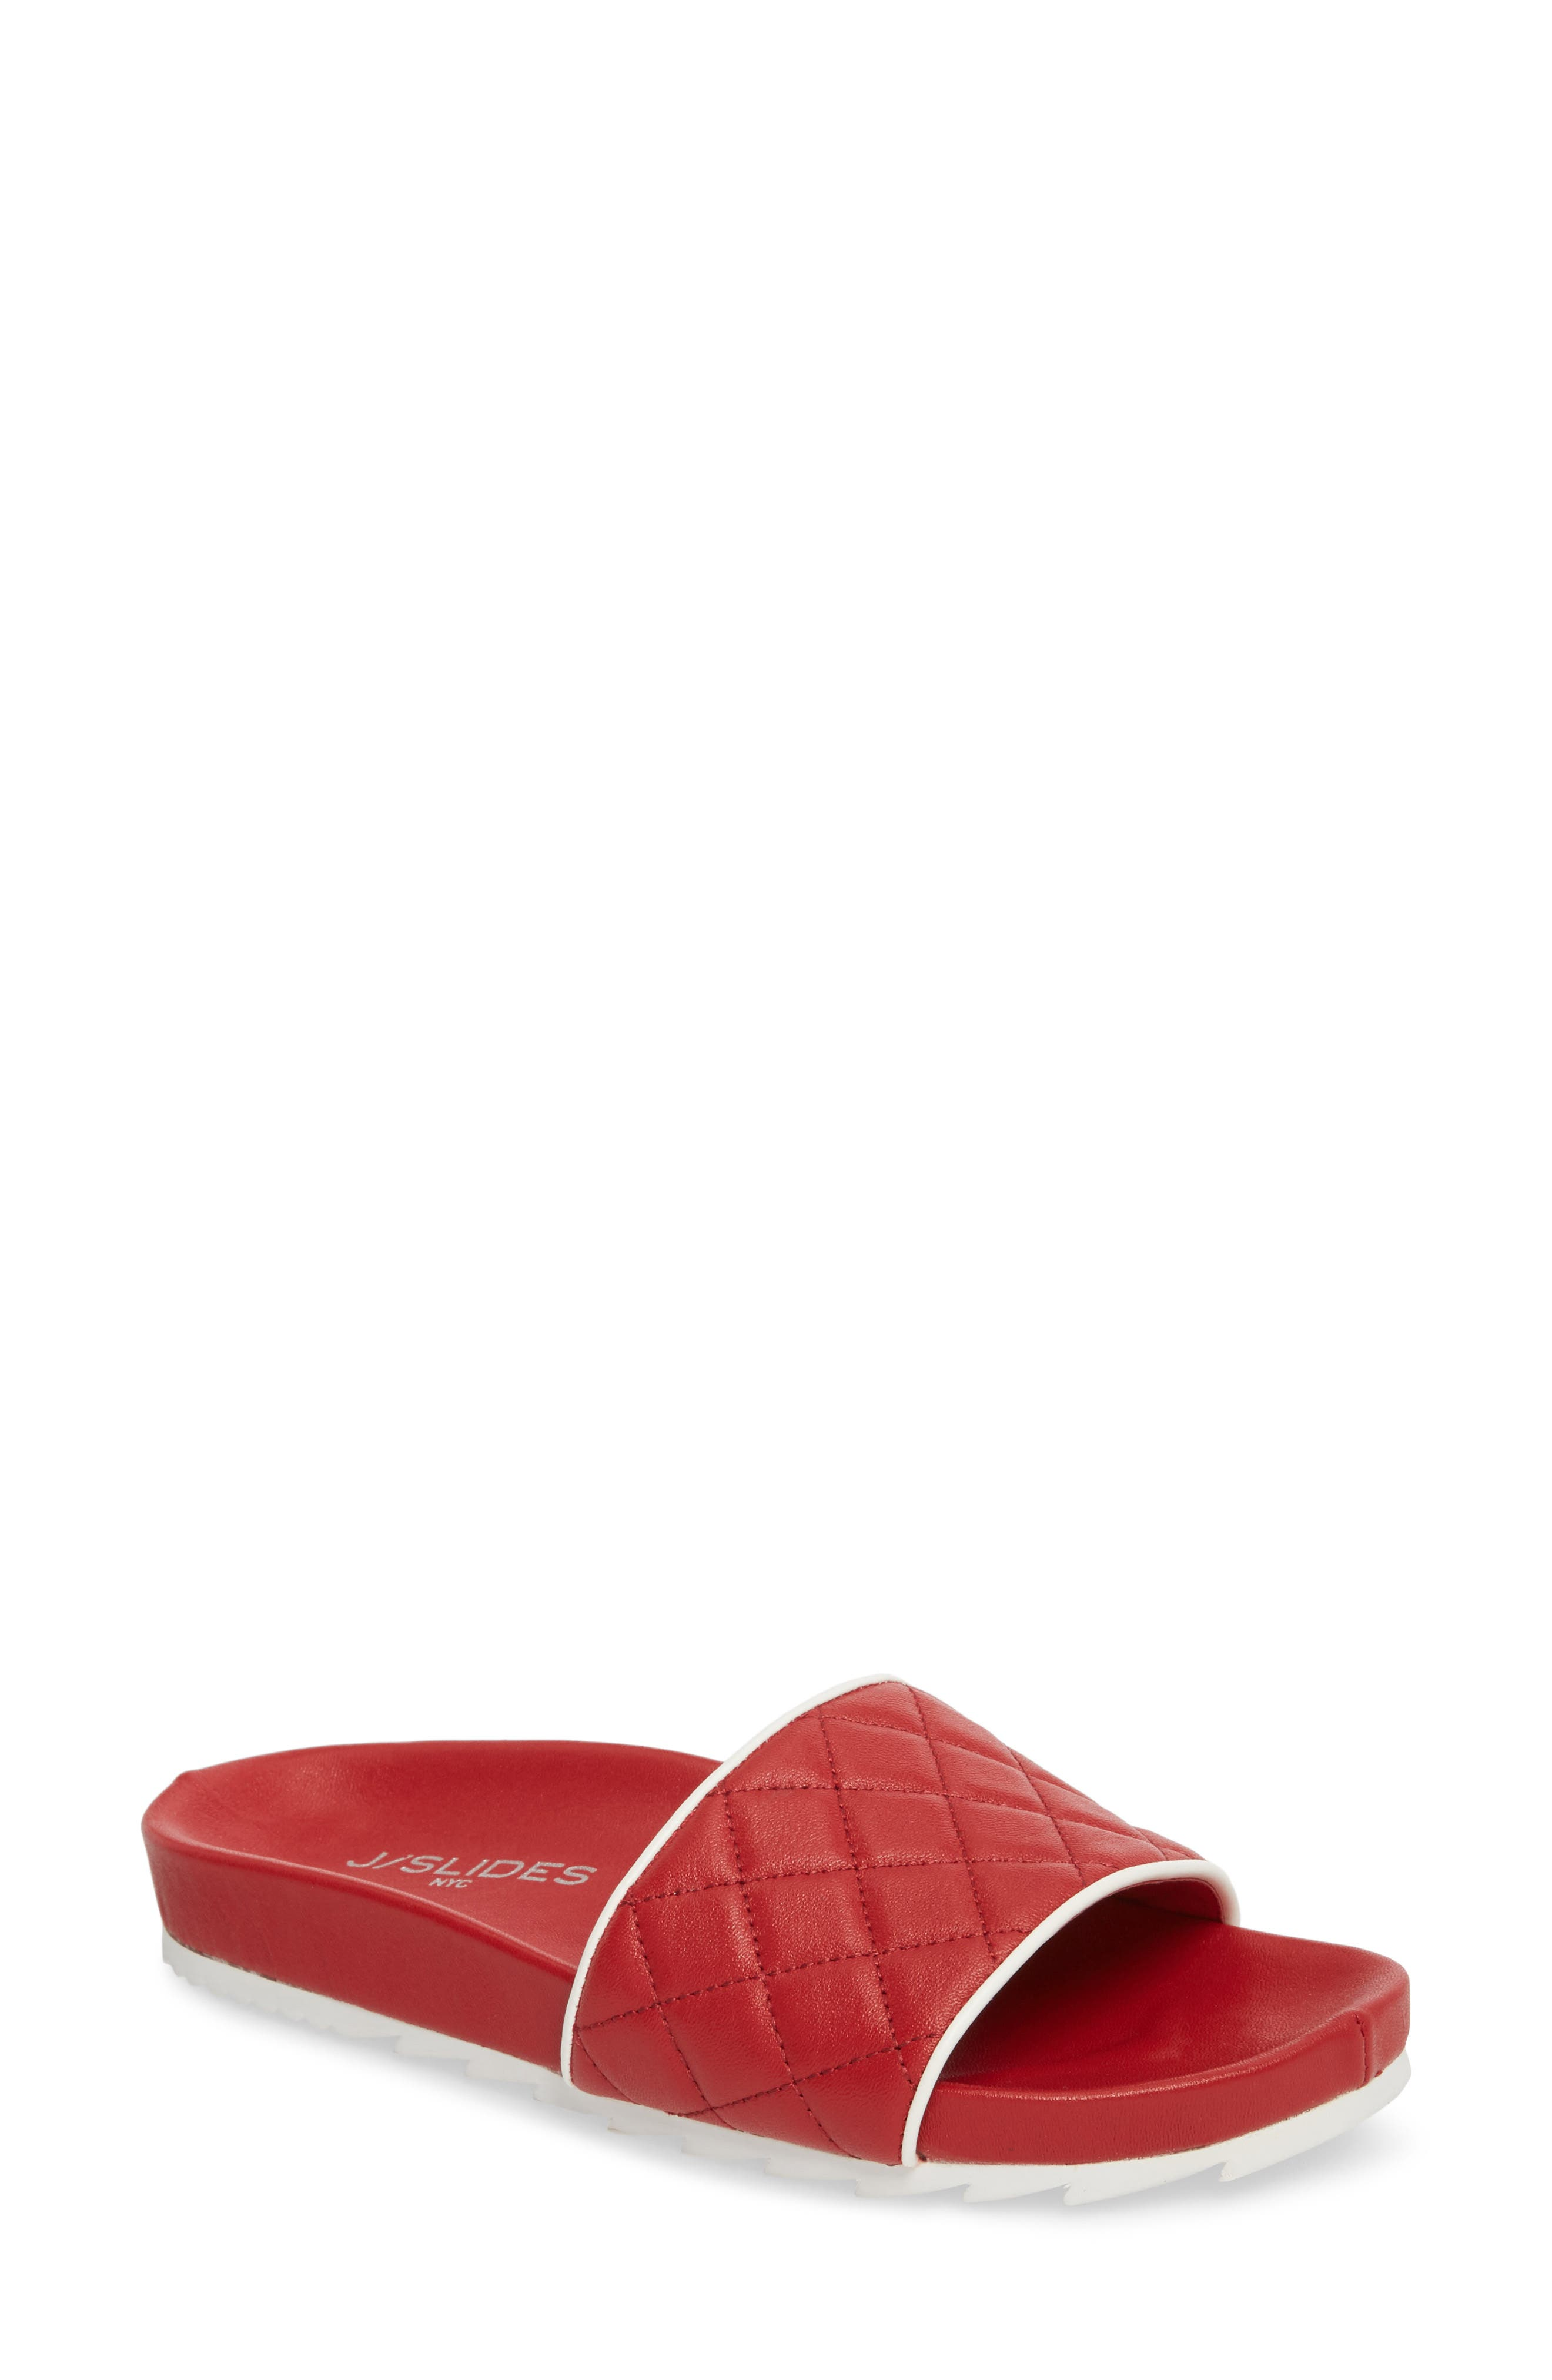 Jslides Edge Slide Sandal- Red